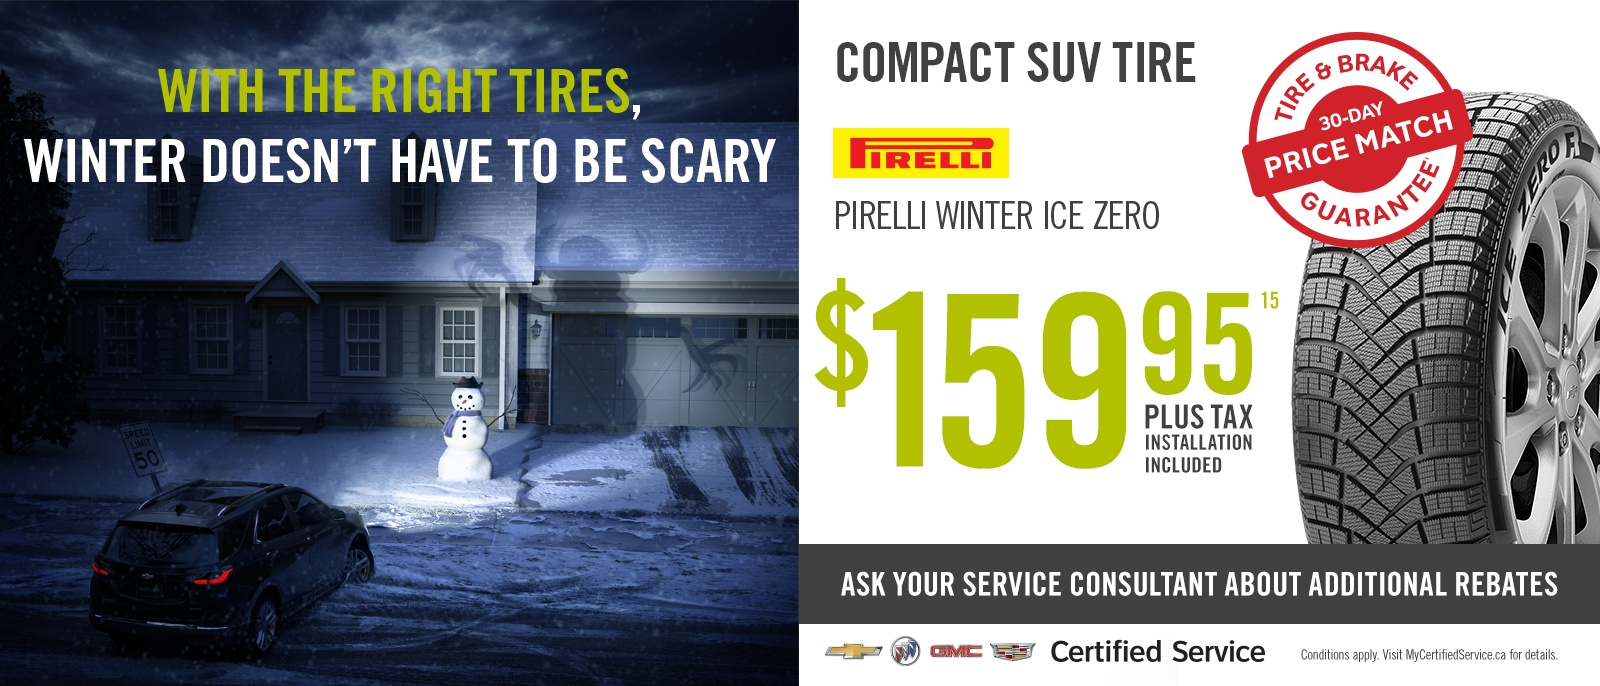 Winter Tire Specials SUVs